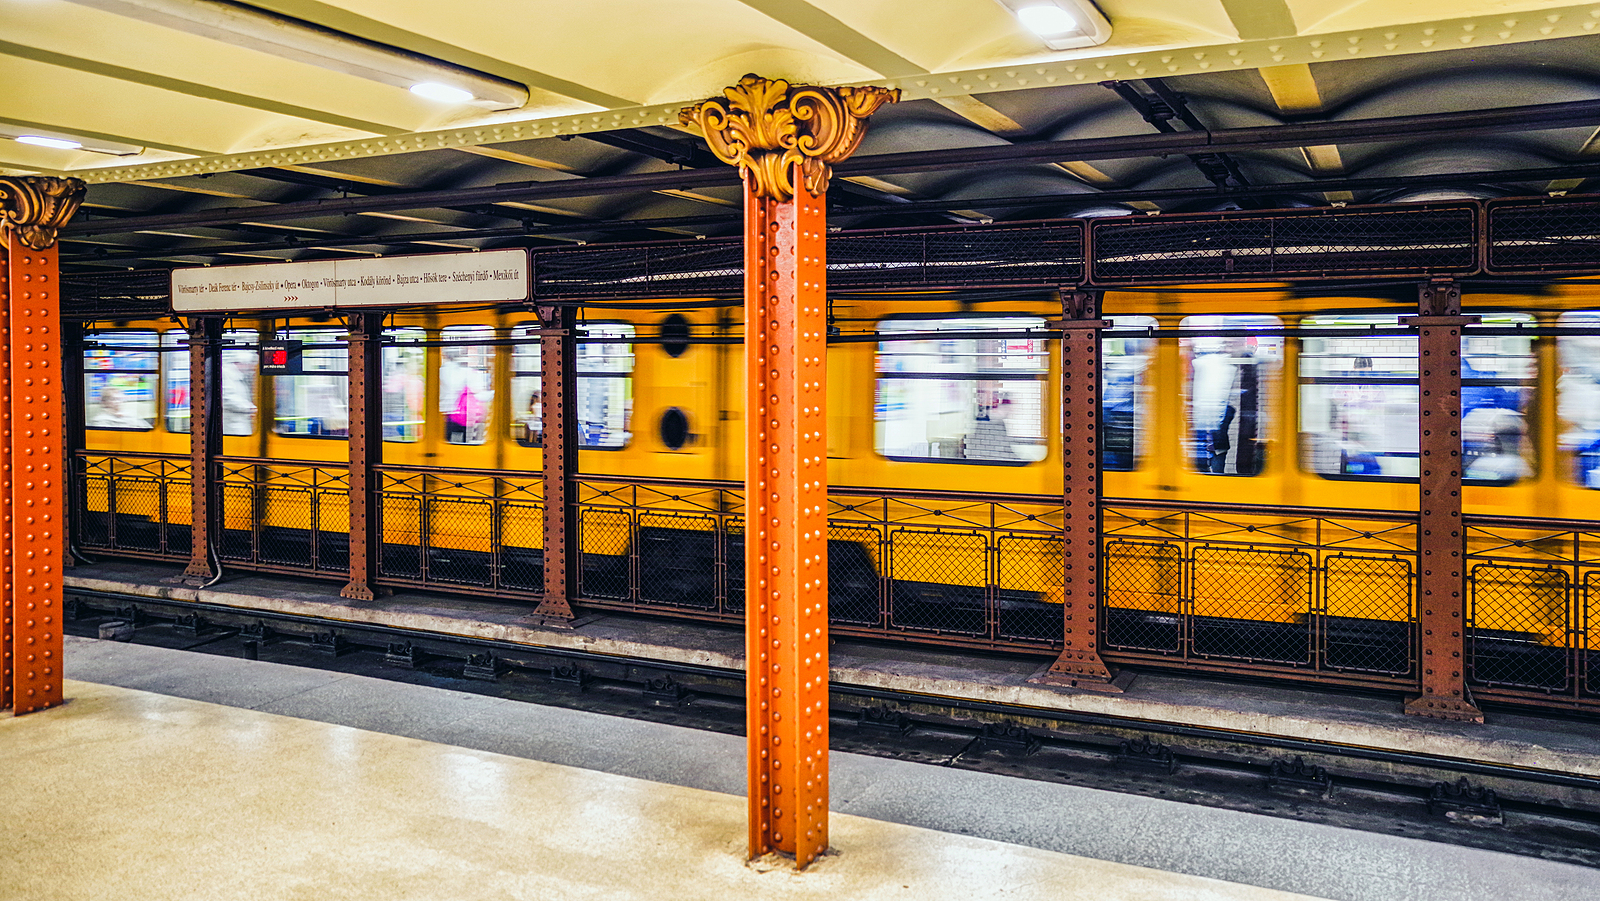 Budapest's M1 line is the oldest underground railway in continental Europe